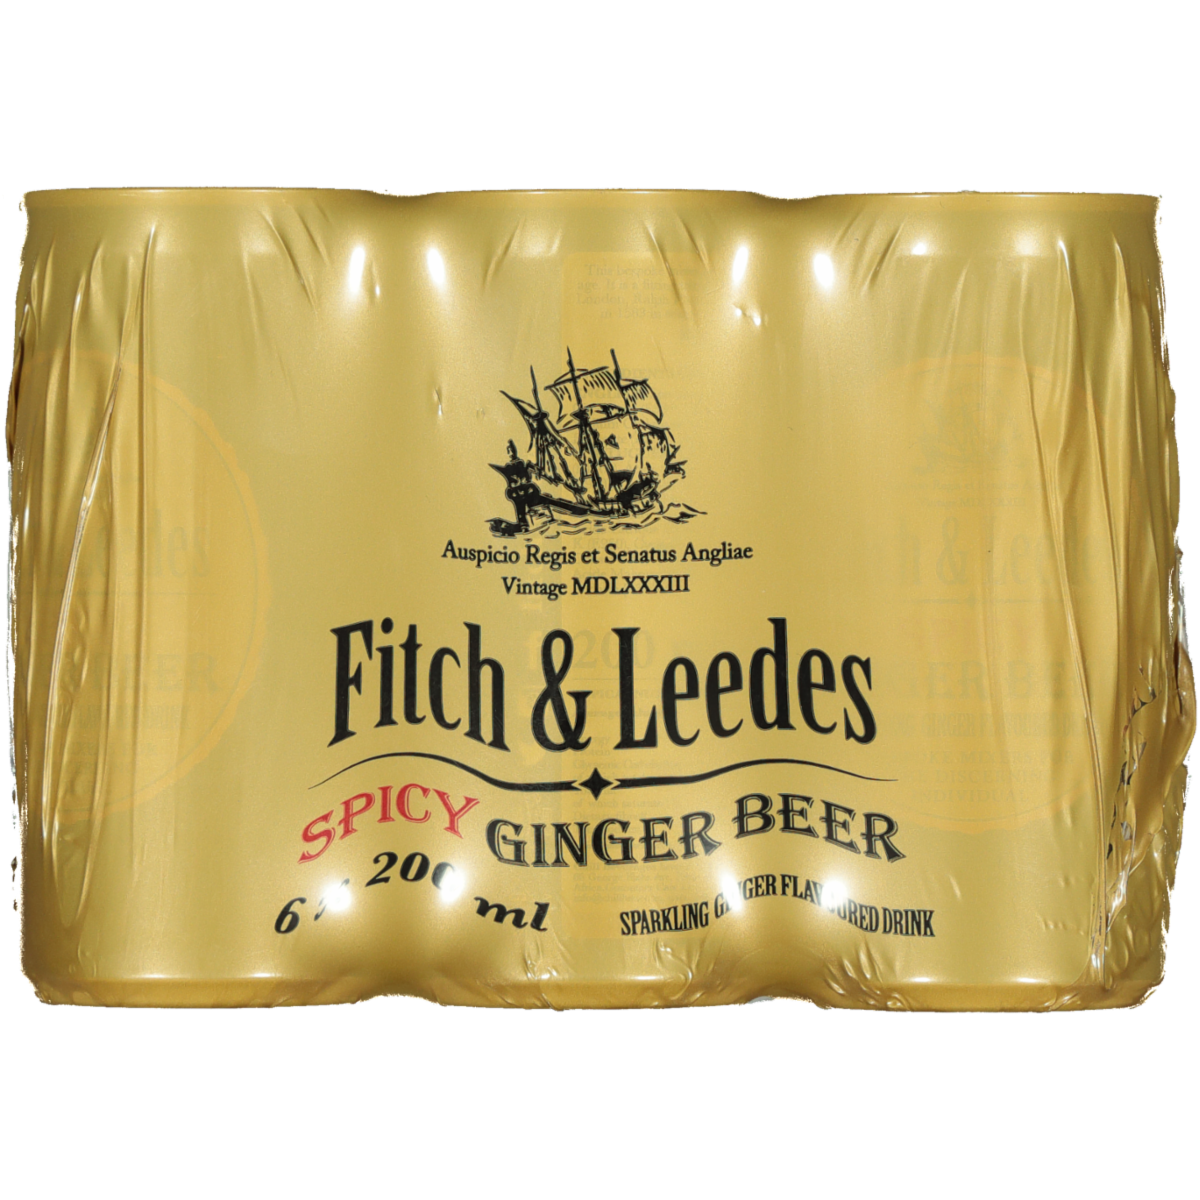 FITCH AND LEEDES SPICY GINGER BEER 6PK